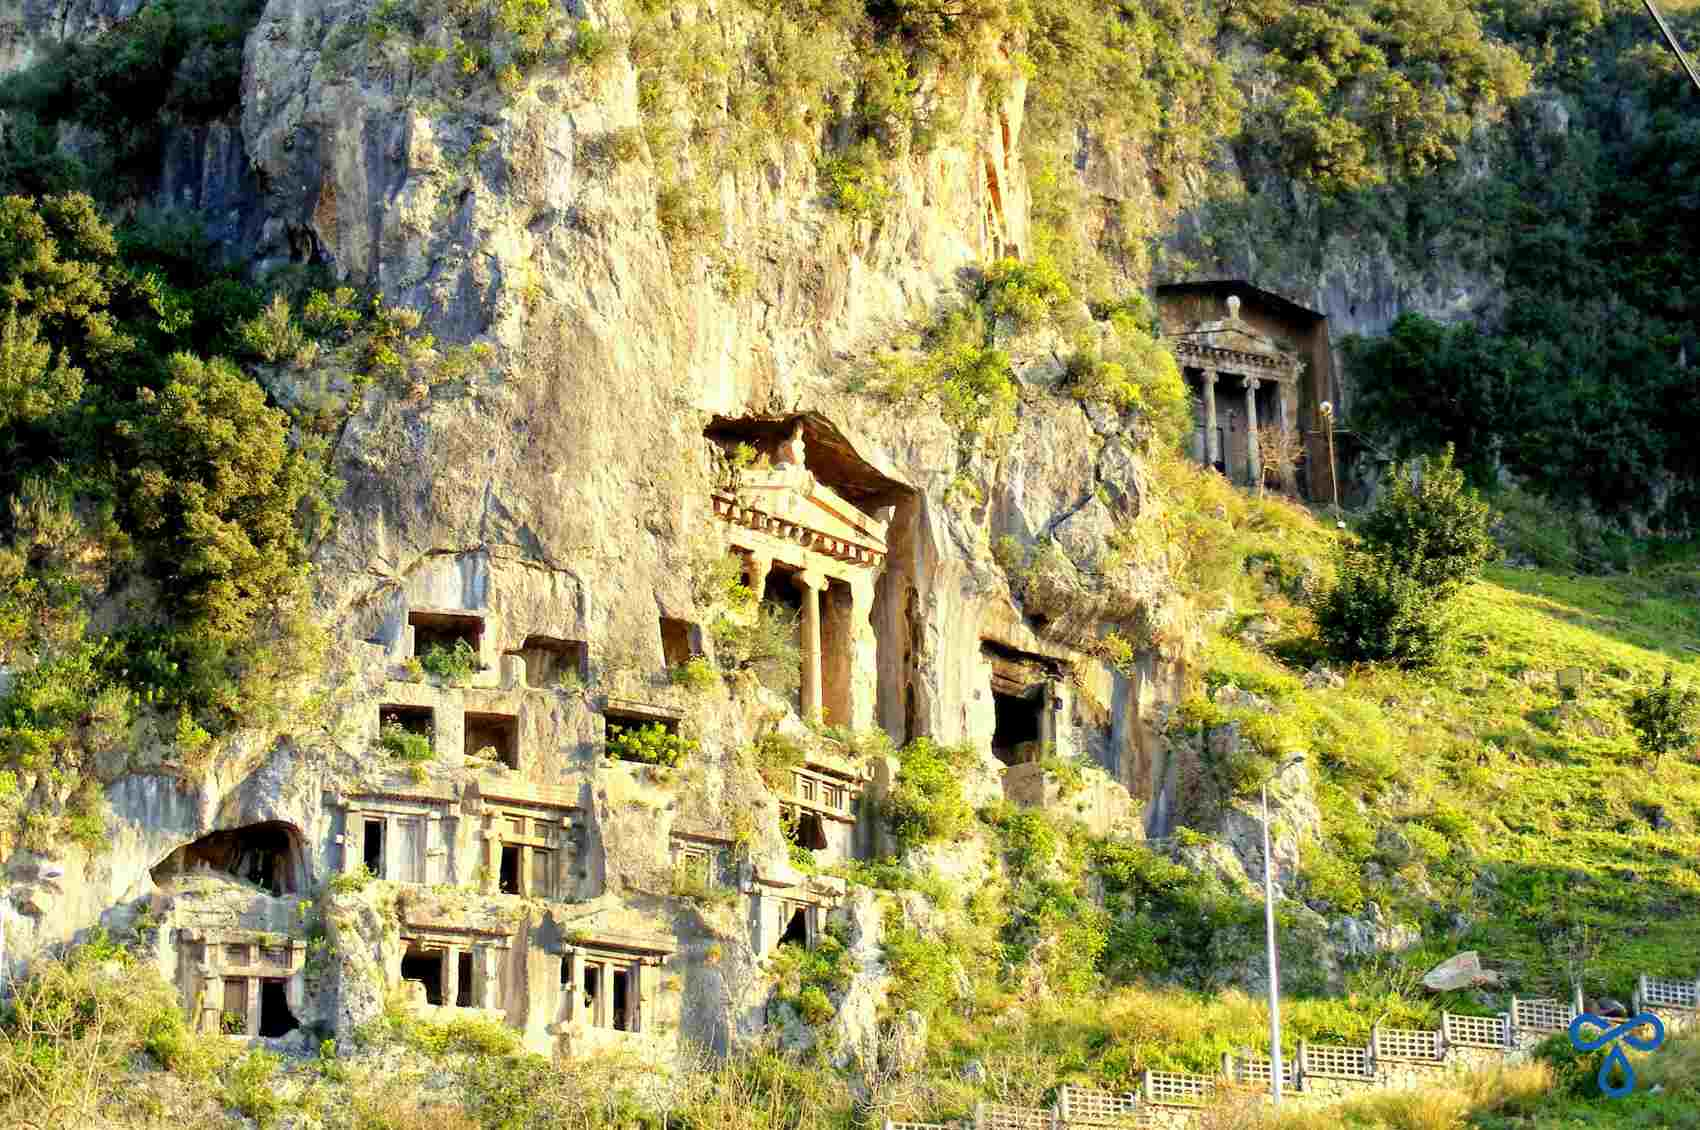 Fethiye Lycian Rock Tombs, Turkey